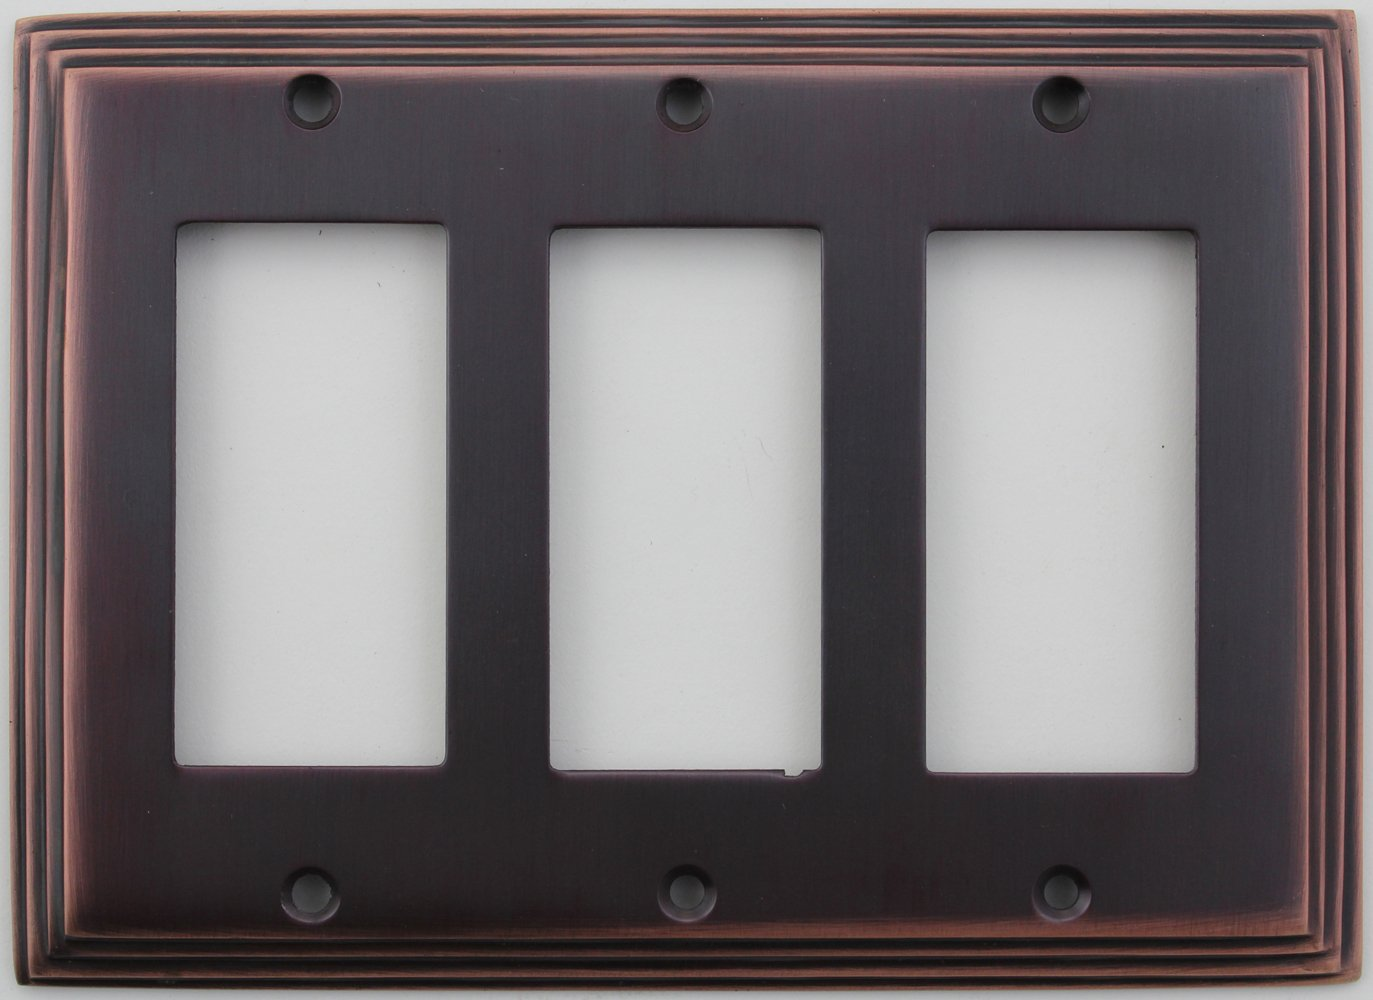 Classic Accents Deco Antique Copper Three Gang GFI/Rocker Opening Wall Plate